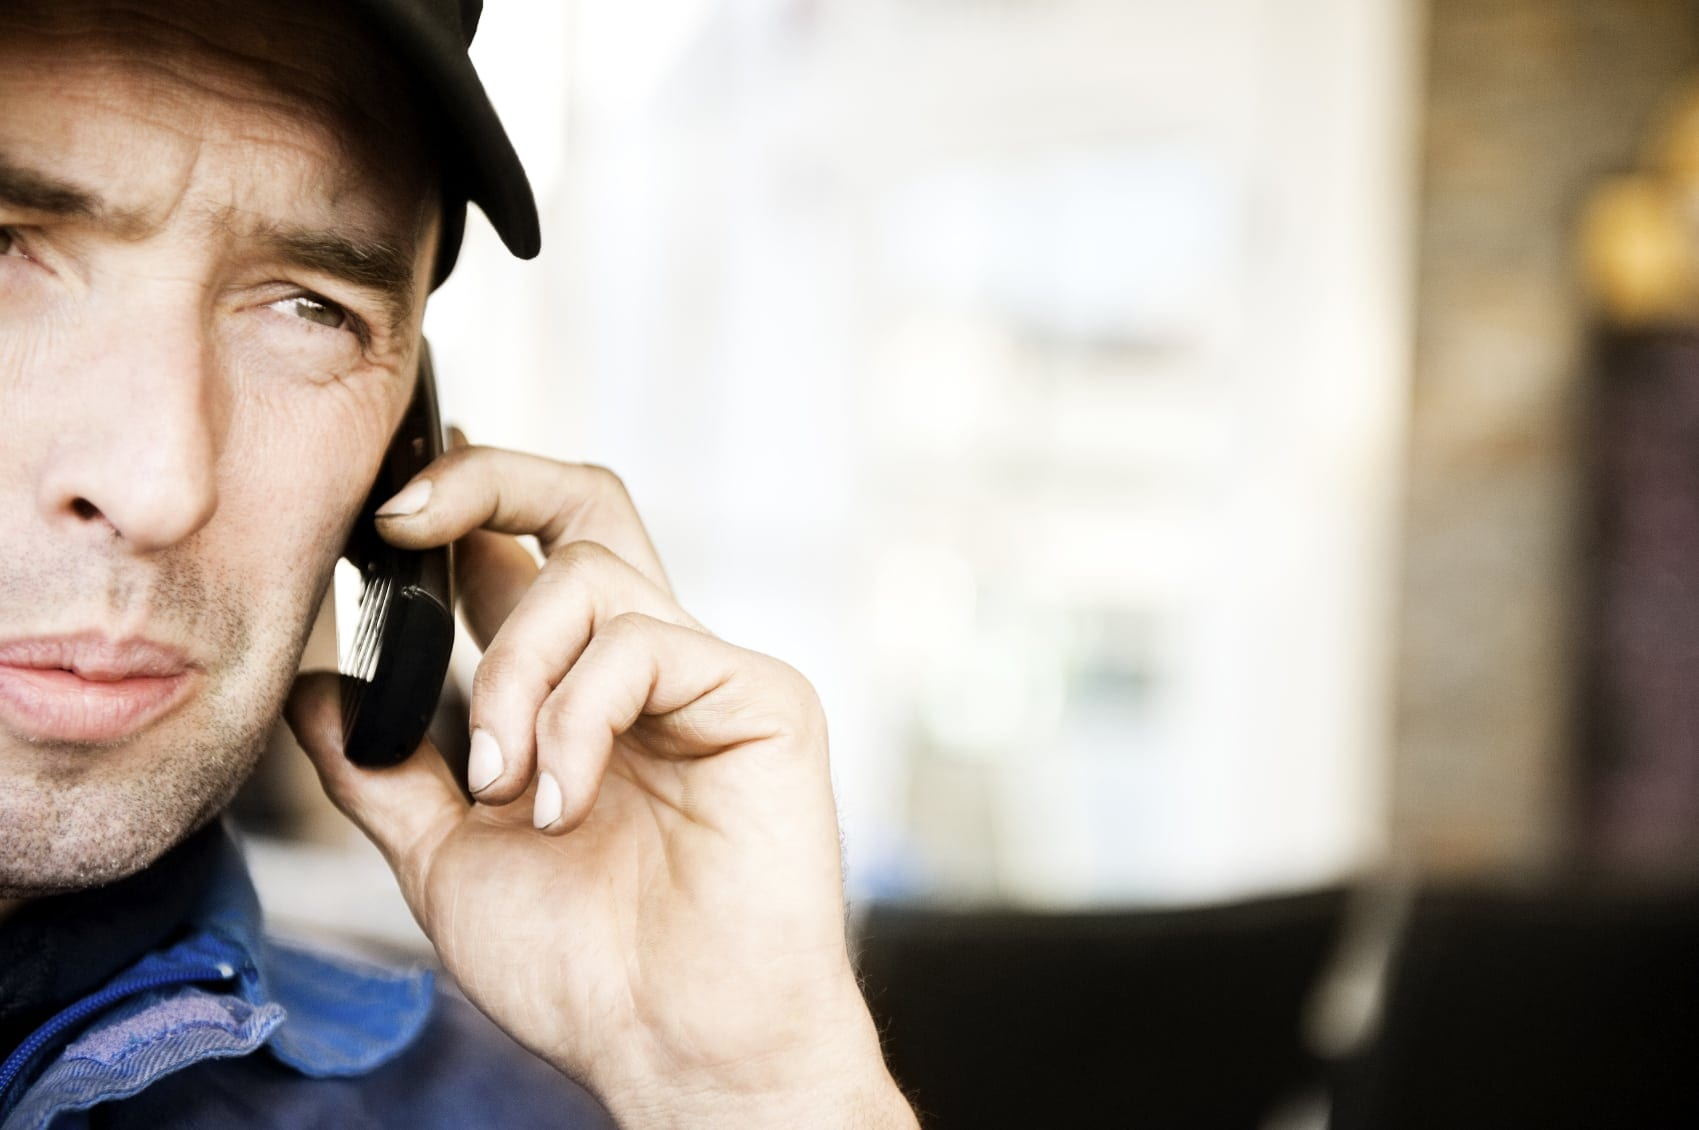 Man Making A Phone Call On Cell Phone Stock Photo